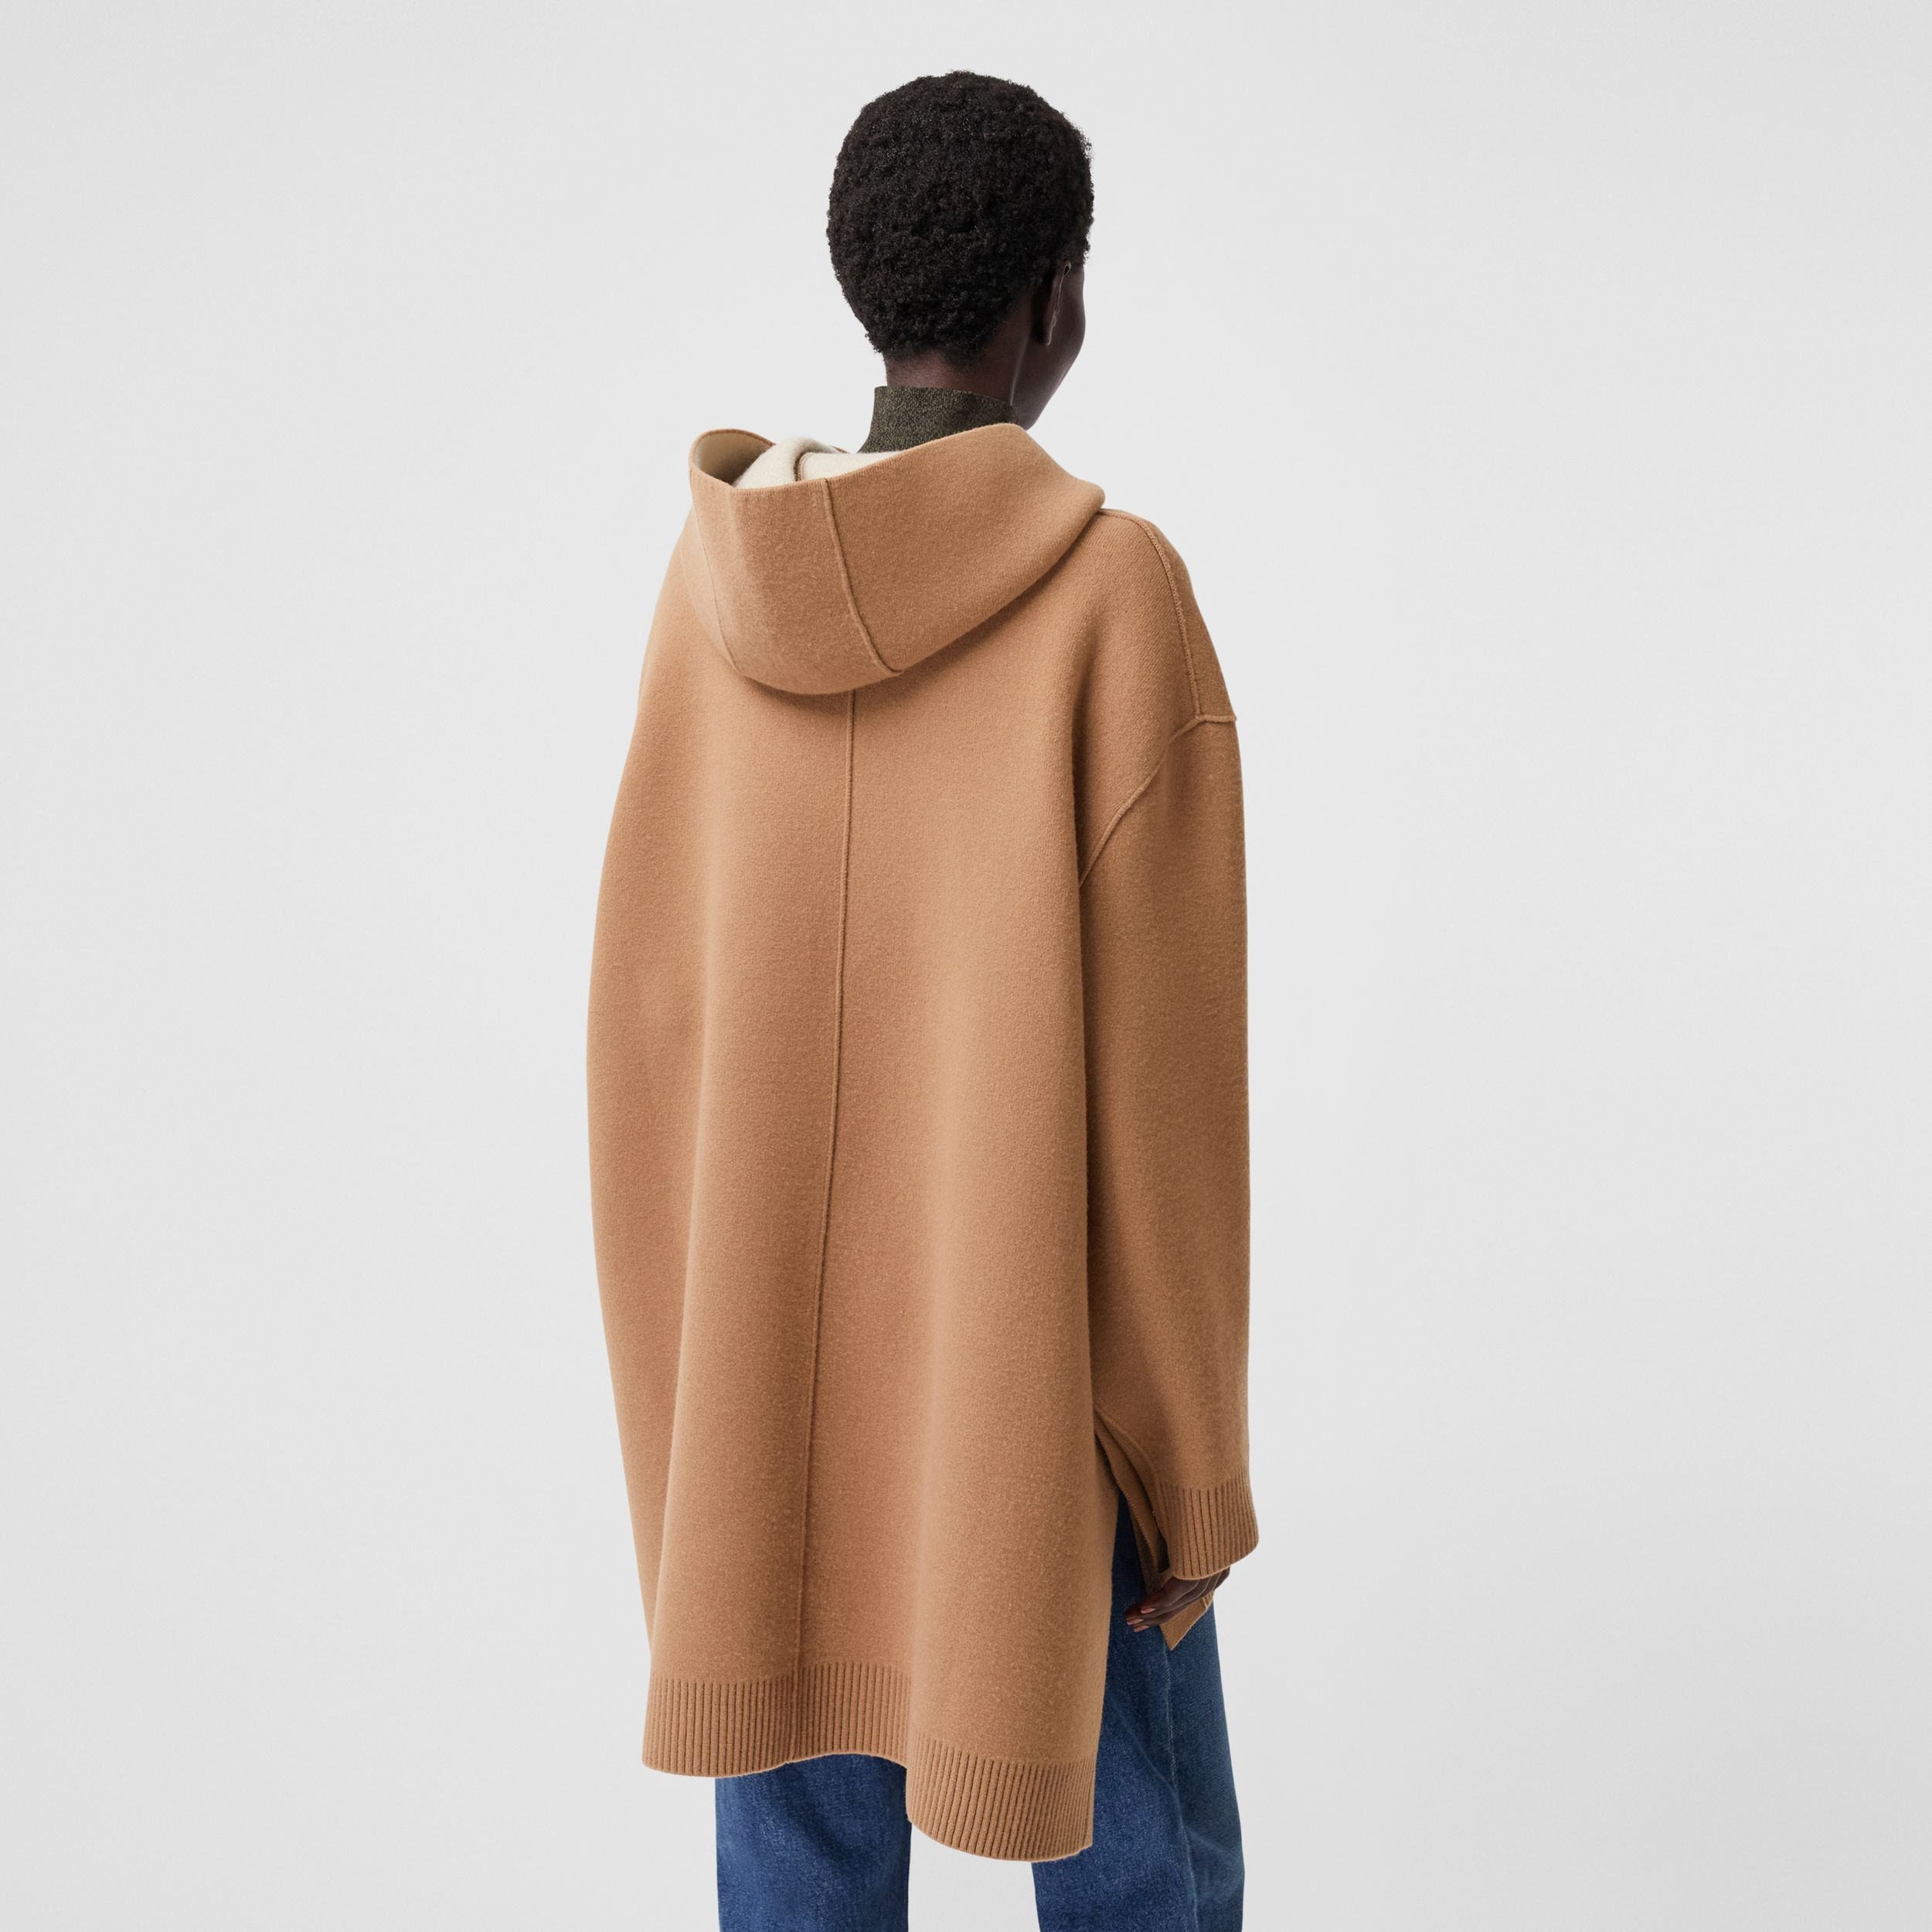 Double-faced Merino Wool Cashmere Blend Hoodie in Warm Camel - Women | Burberry Canada - 3